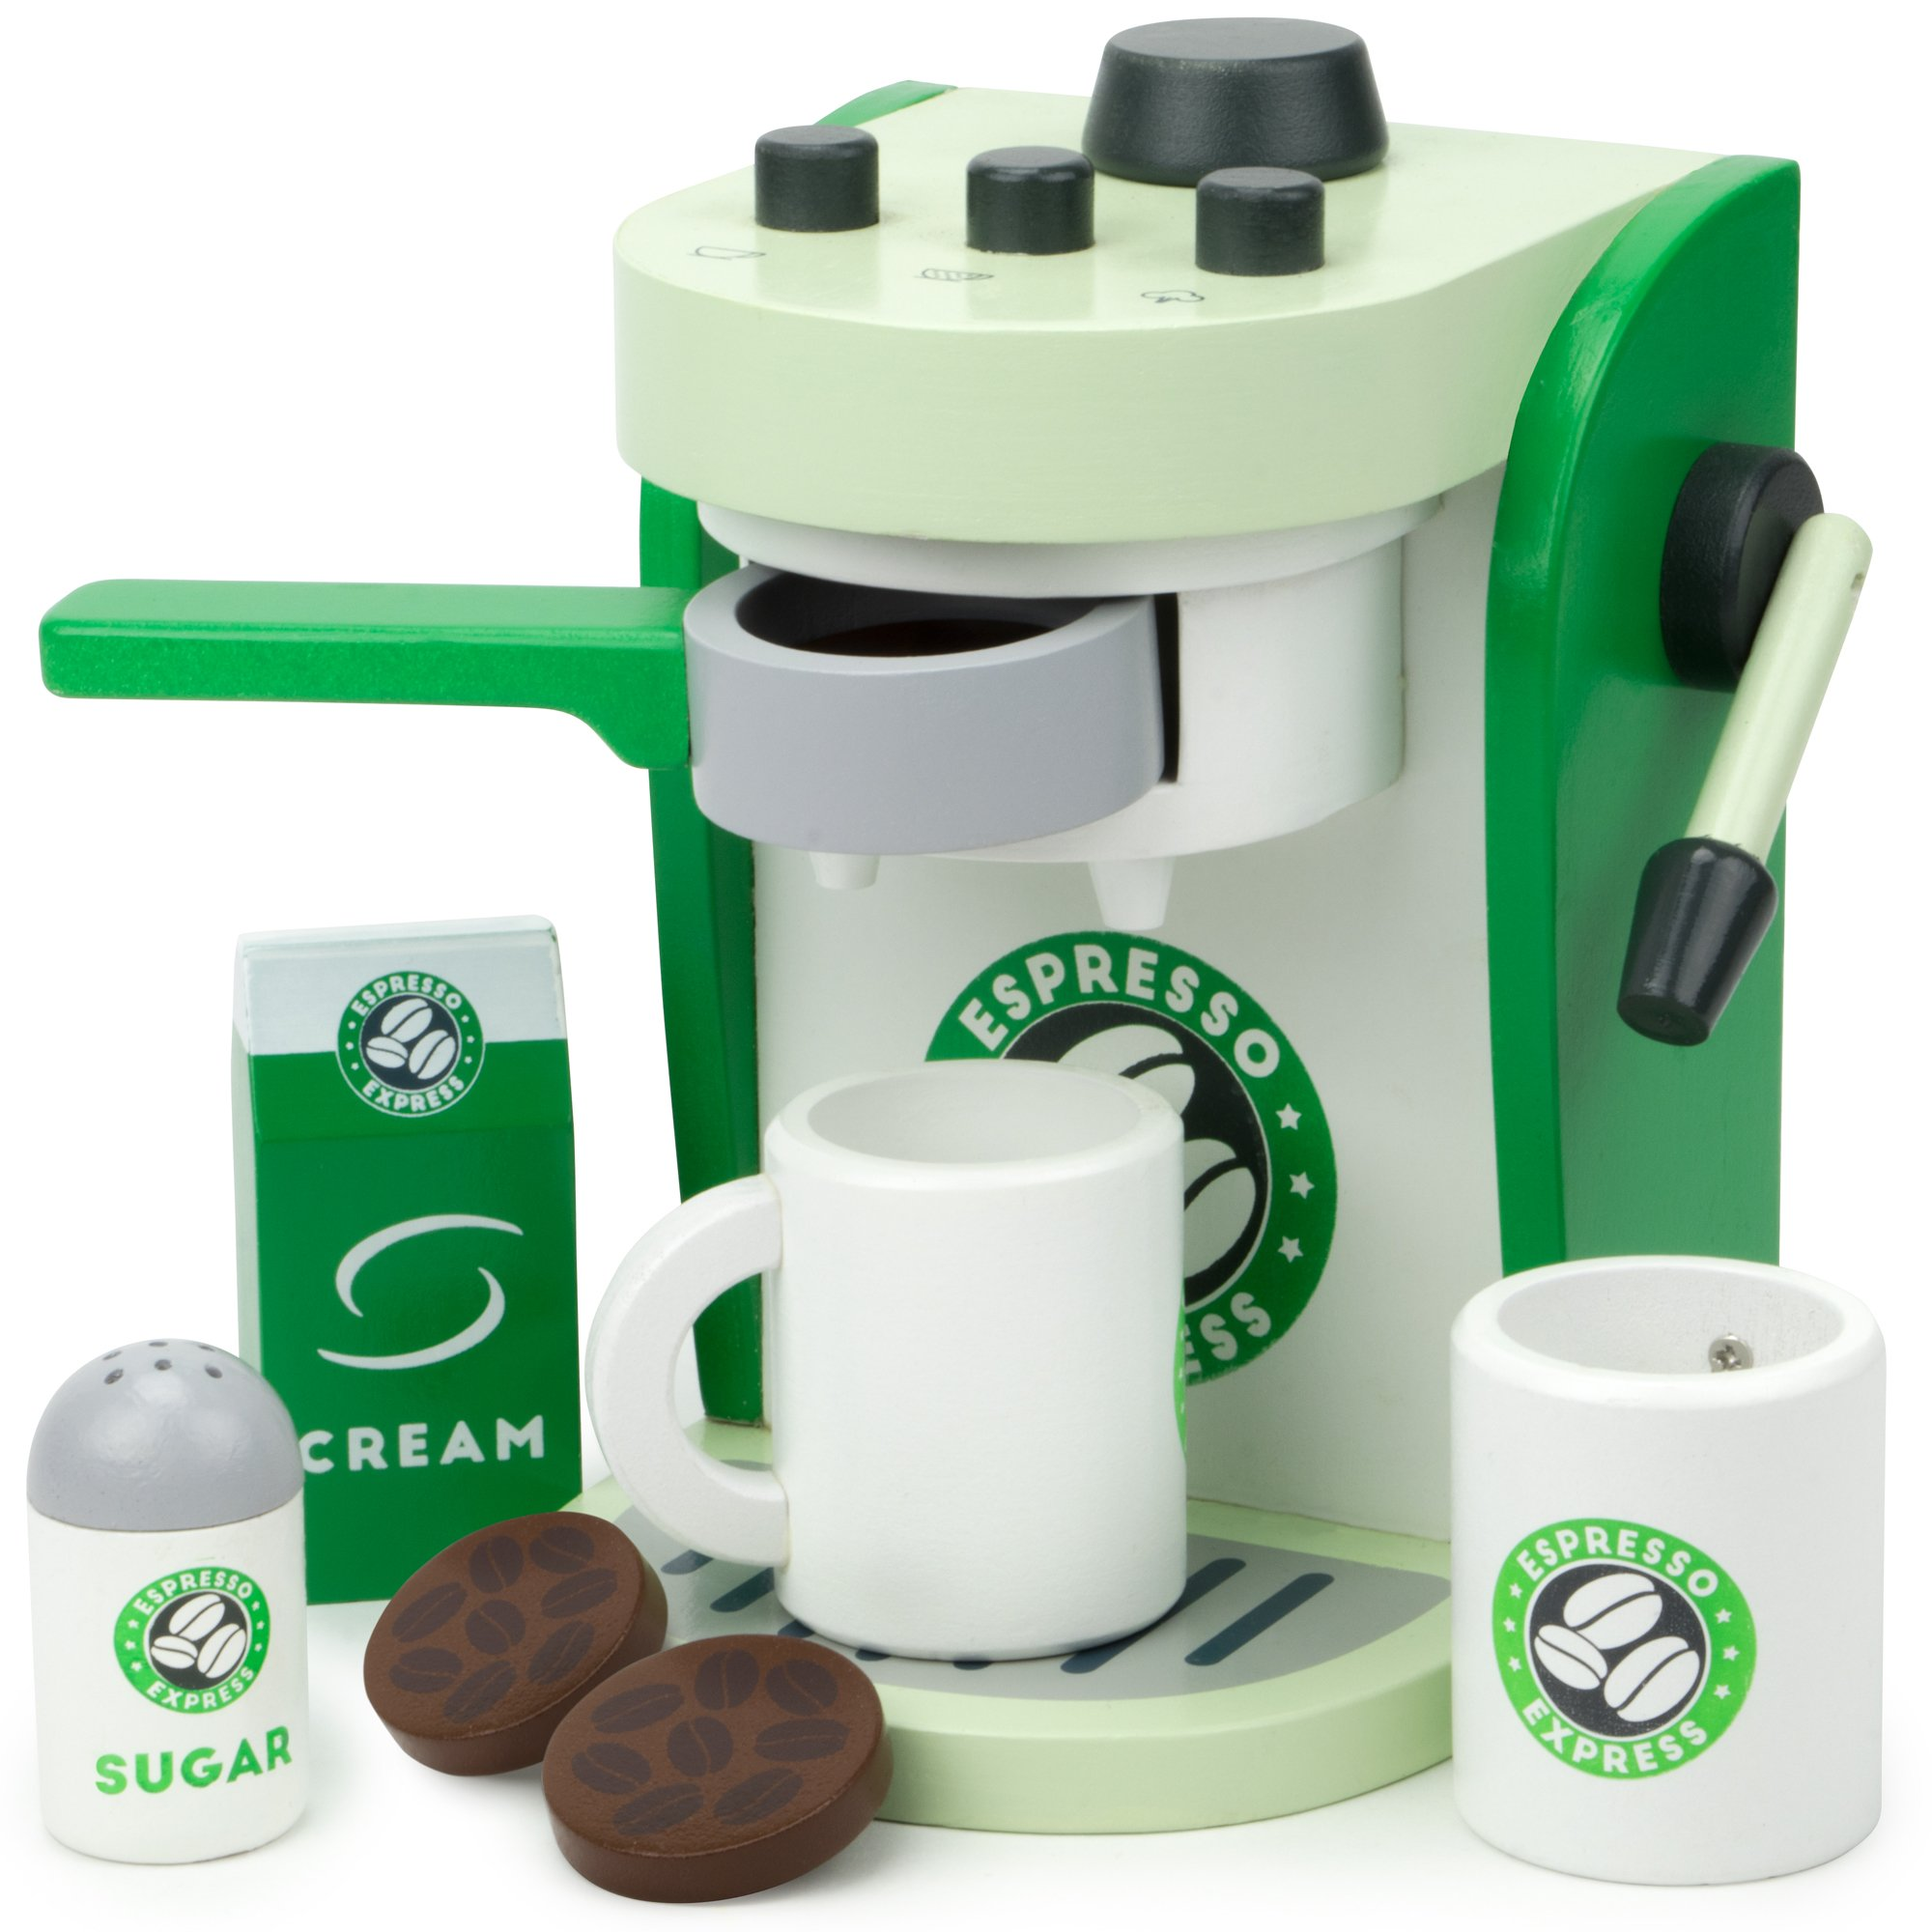 Imagination Generation Espresso Express Coffee Maker Playset, with 2 Cups, 2 Pods, 1 Portafilter, 1 Coffee Maker, Cream & Sugar (8 Pcs) by Imagination Generation